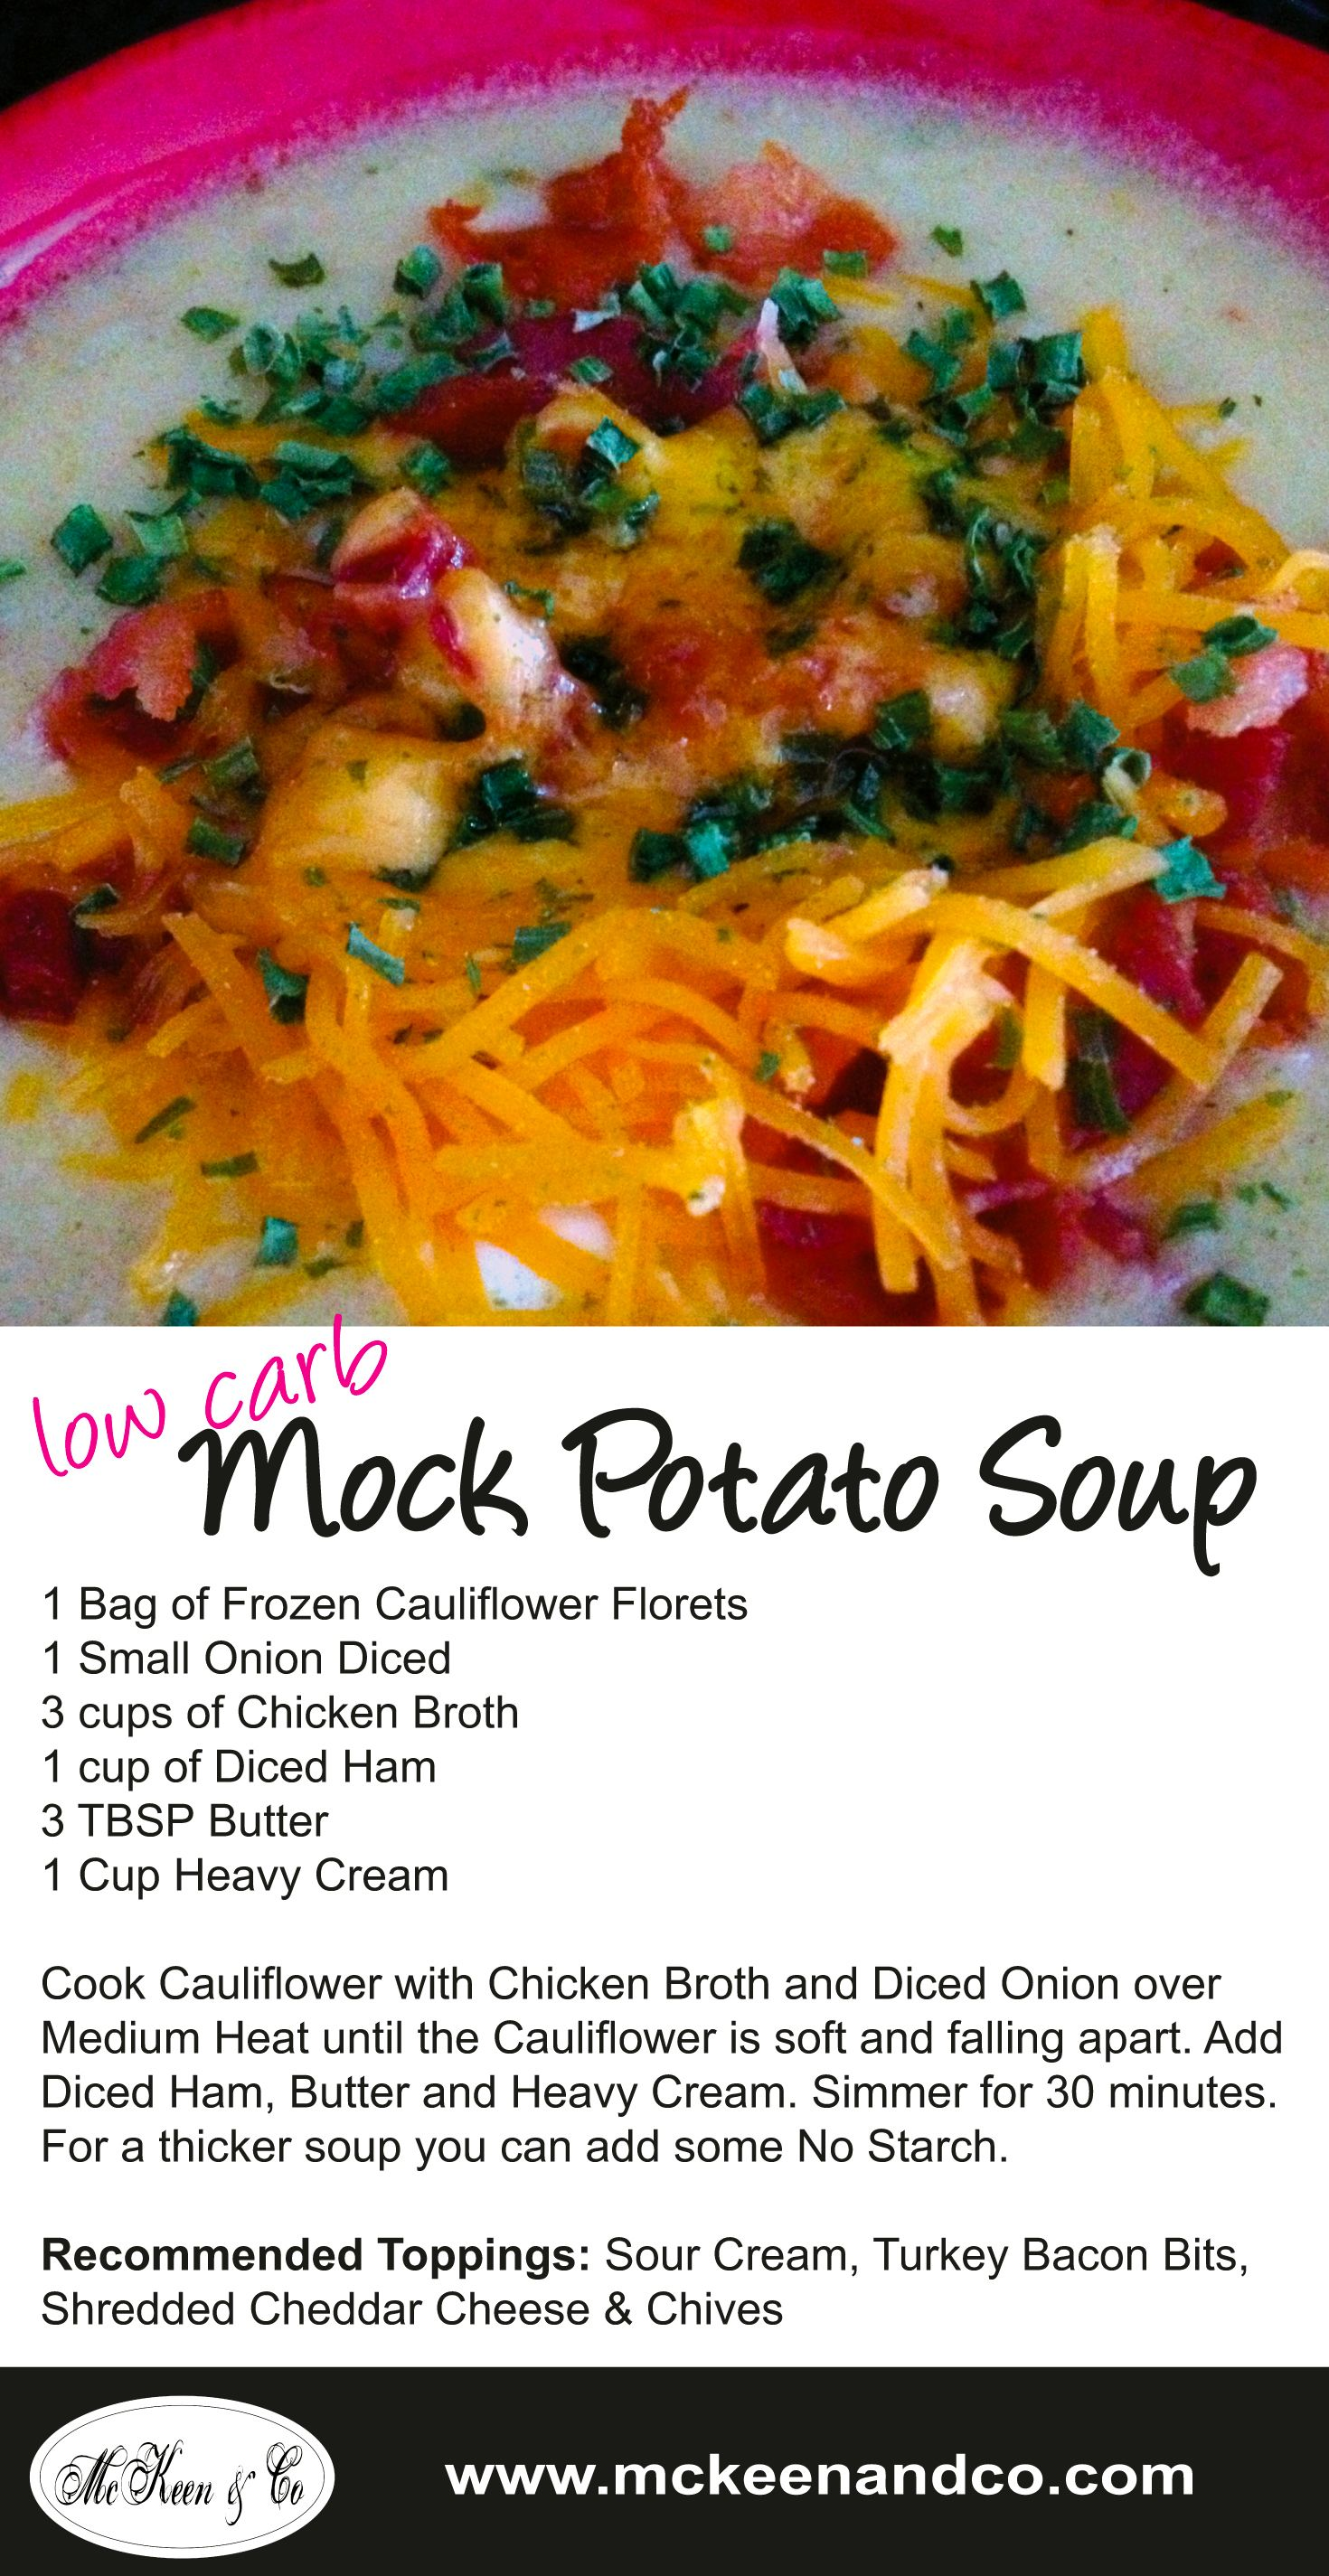 Low Carb Soup Recipes for the Atkins Diet | Heathy choices | Low